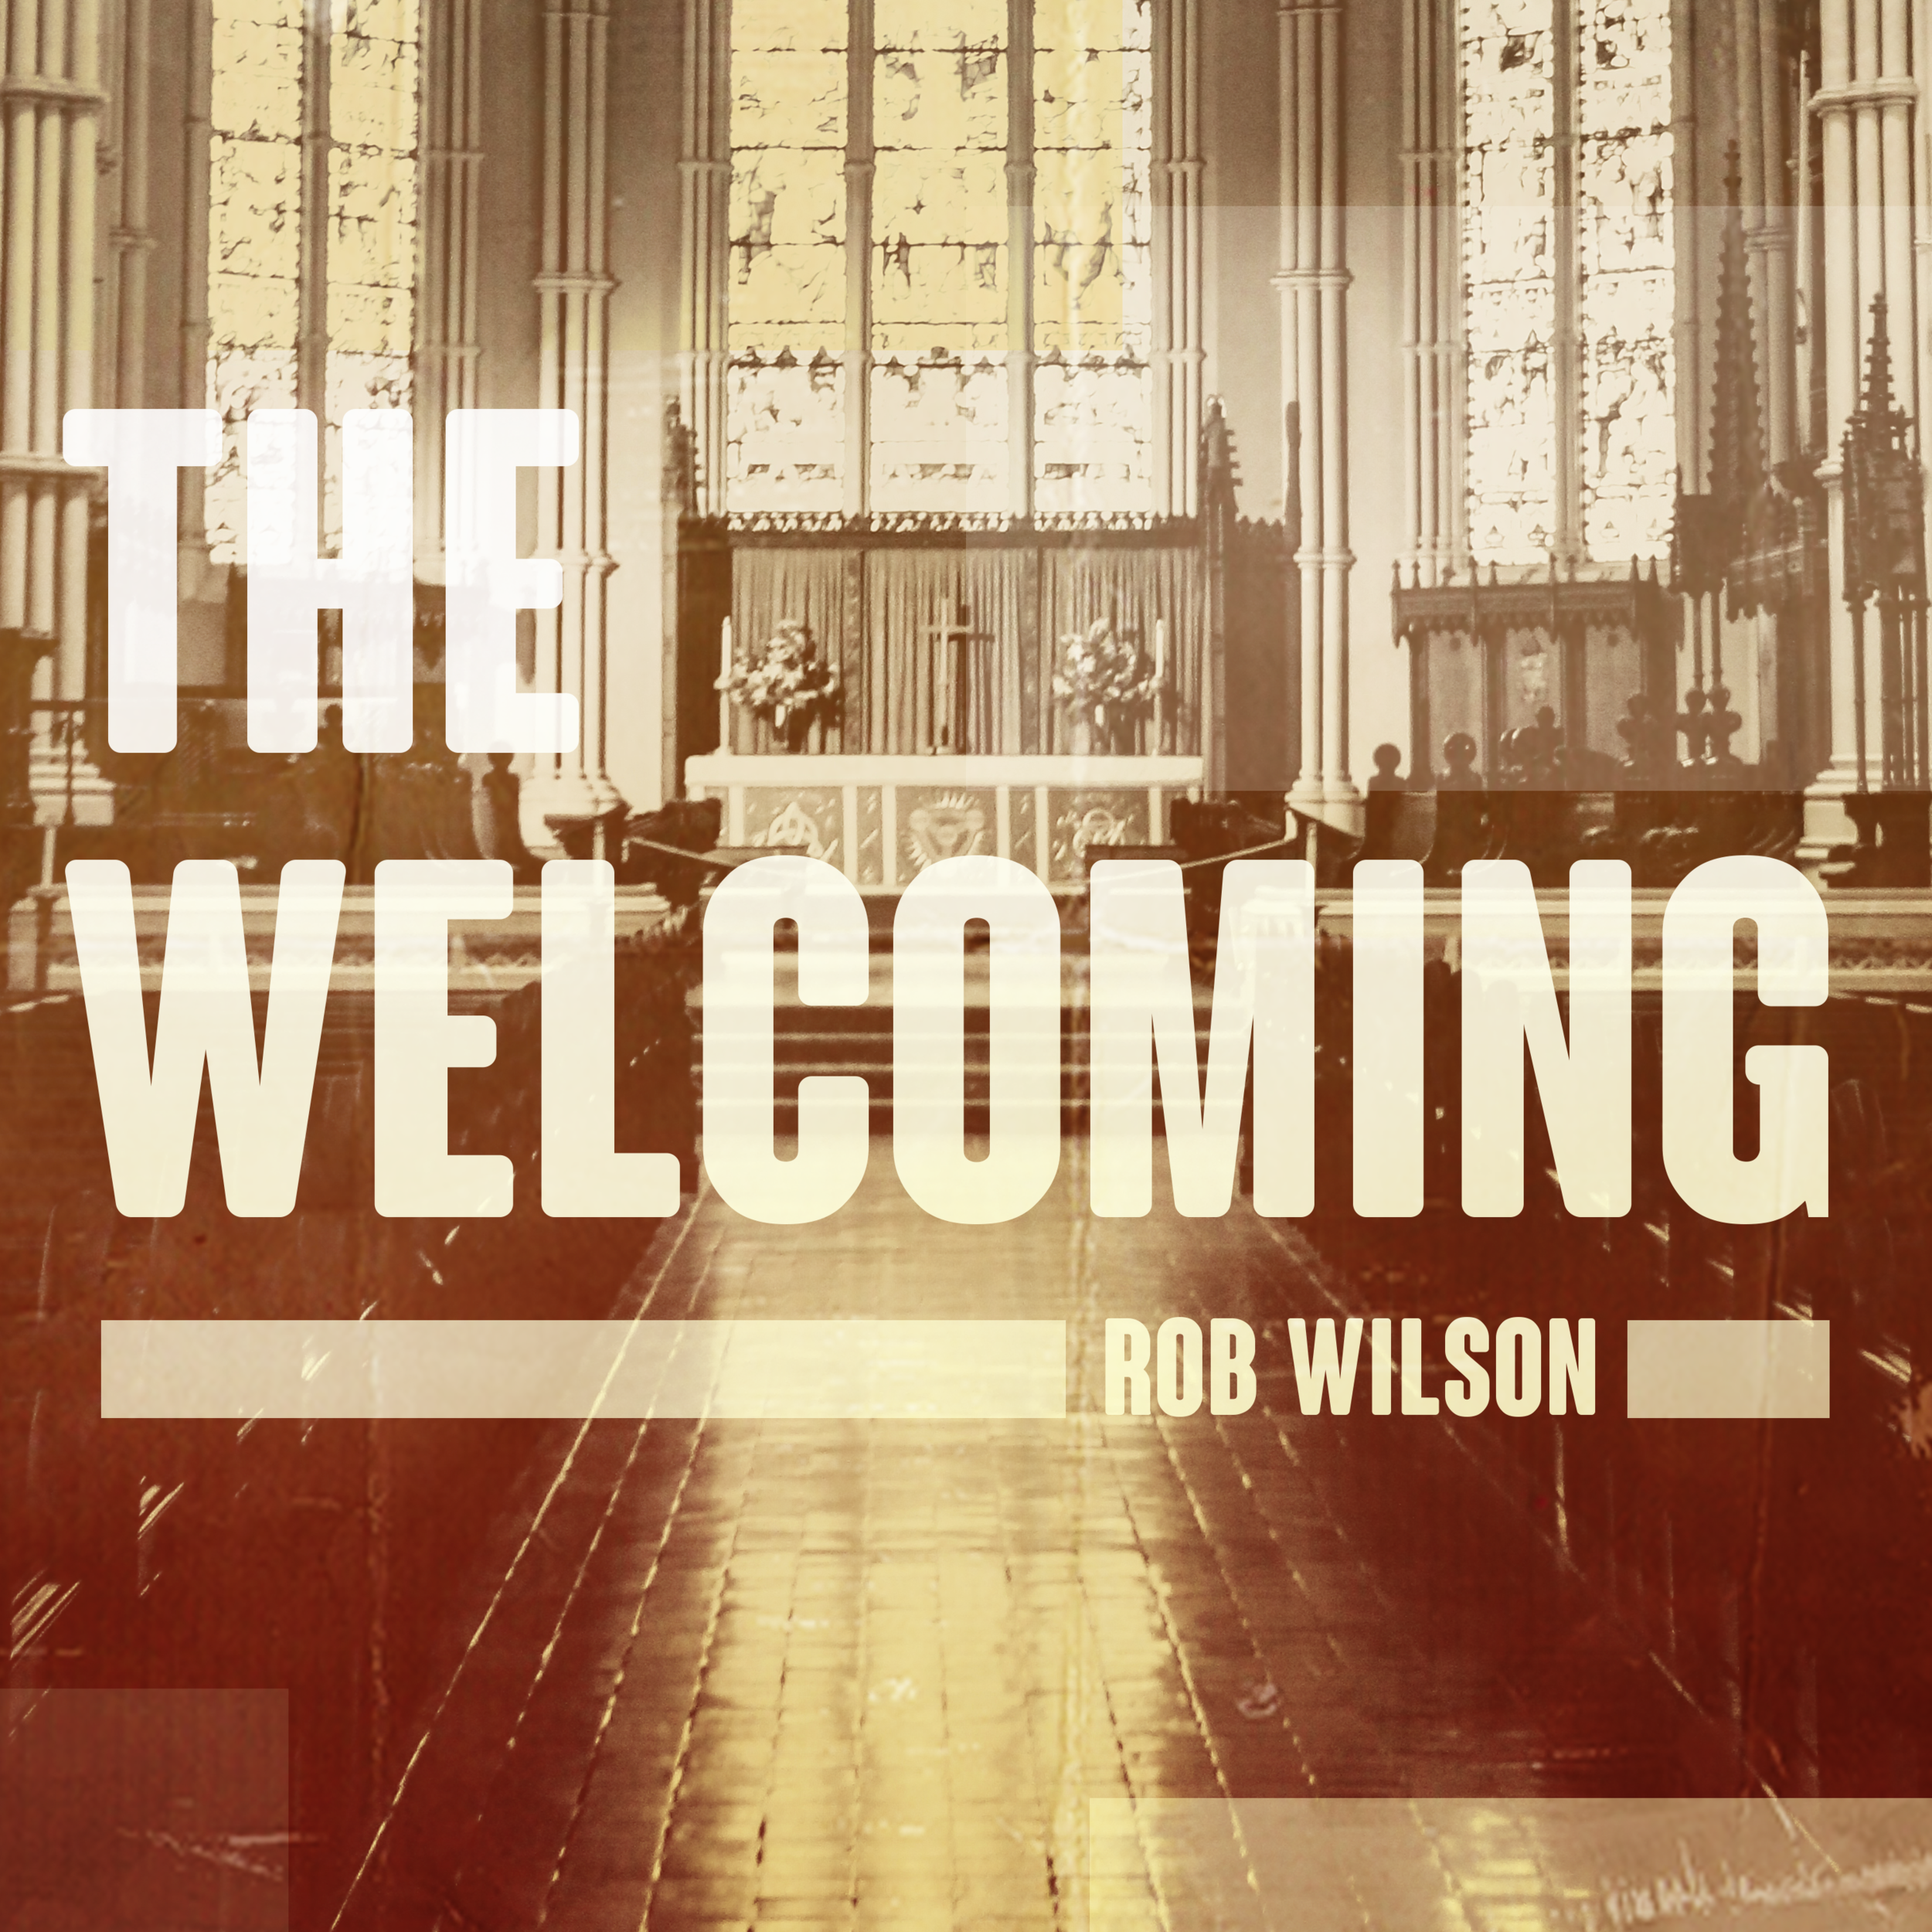 The Welcoming - EP Released: January 19, 2018 Produced/Mixed by Justin Leu in Dallas Mastered by Joe Causey in Nashville